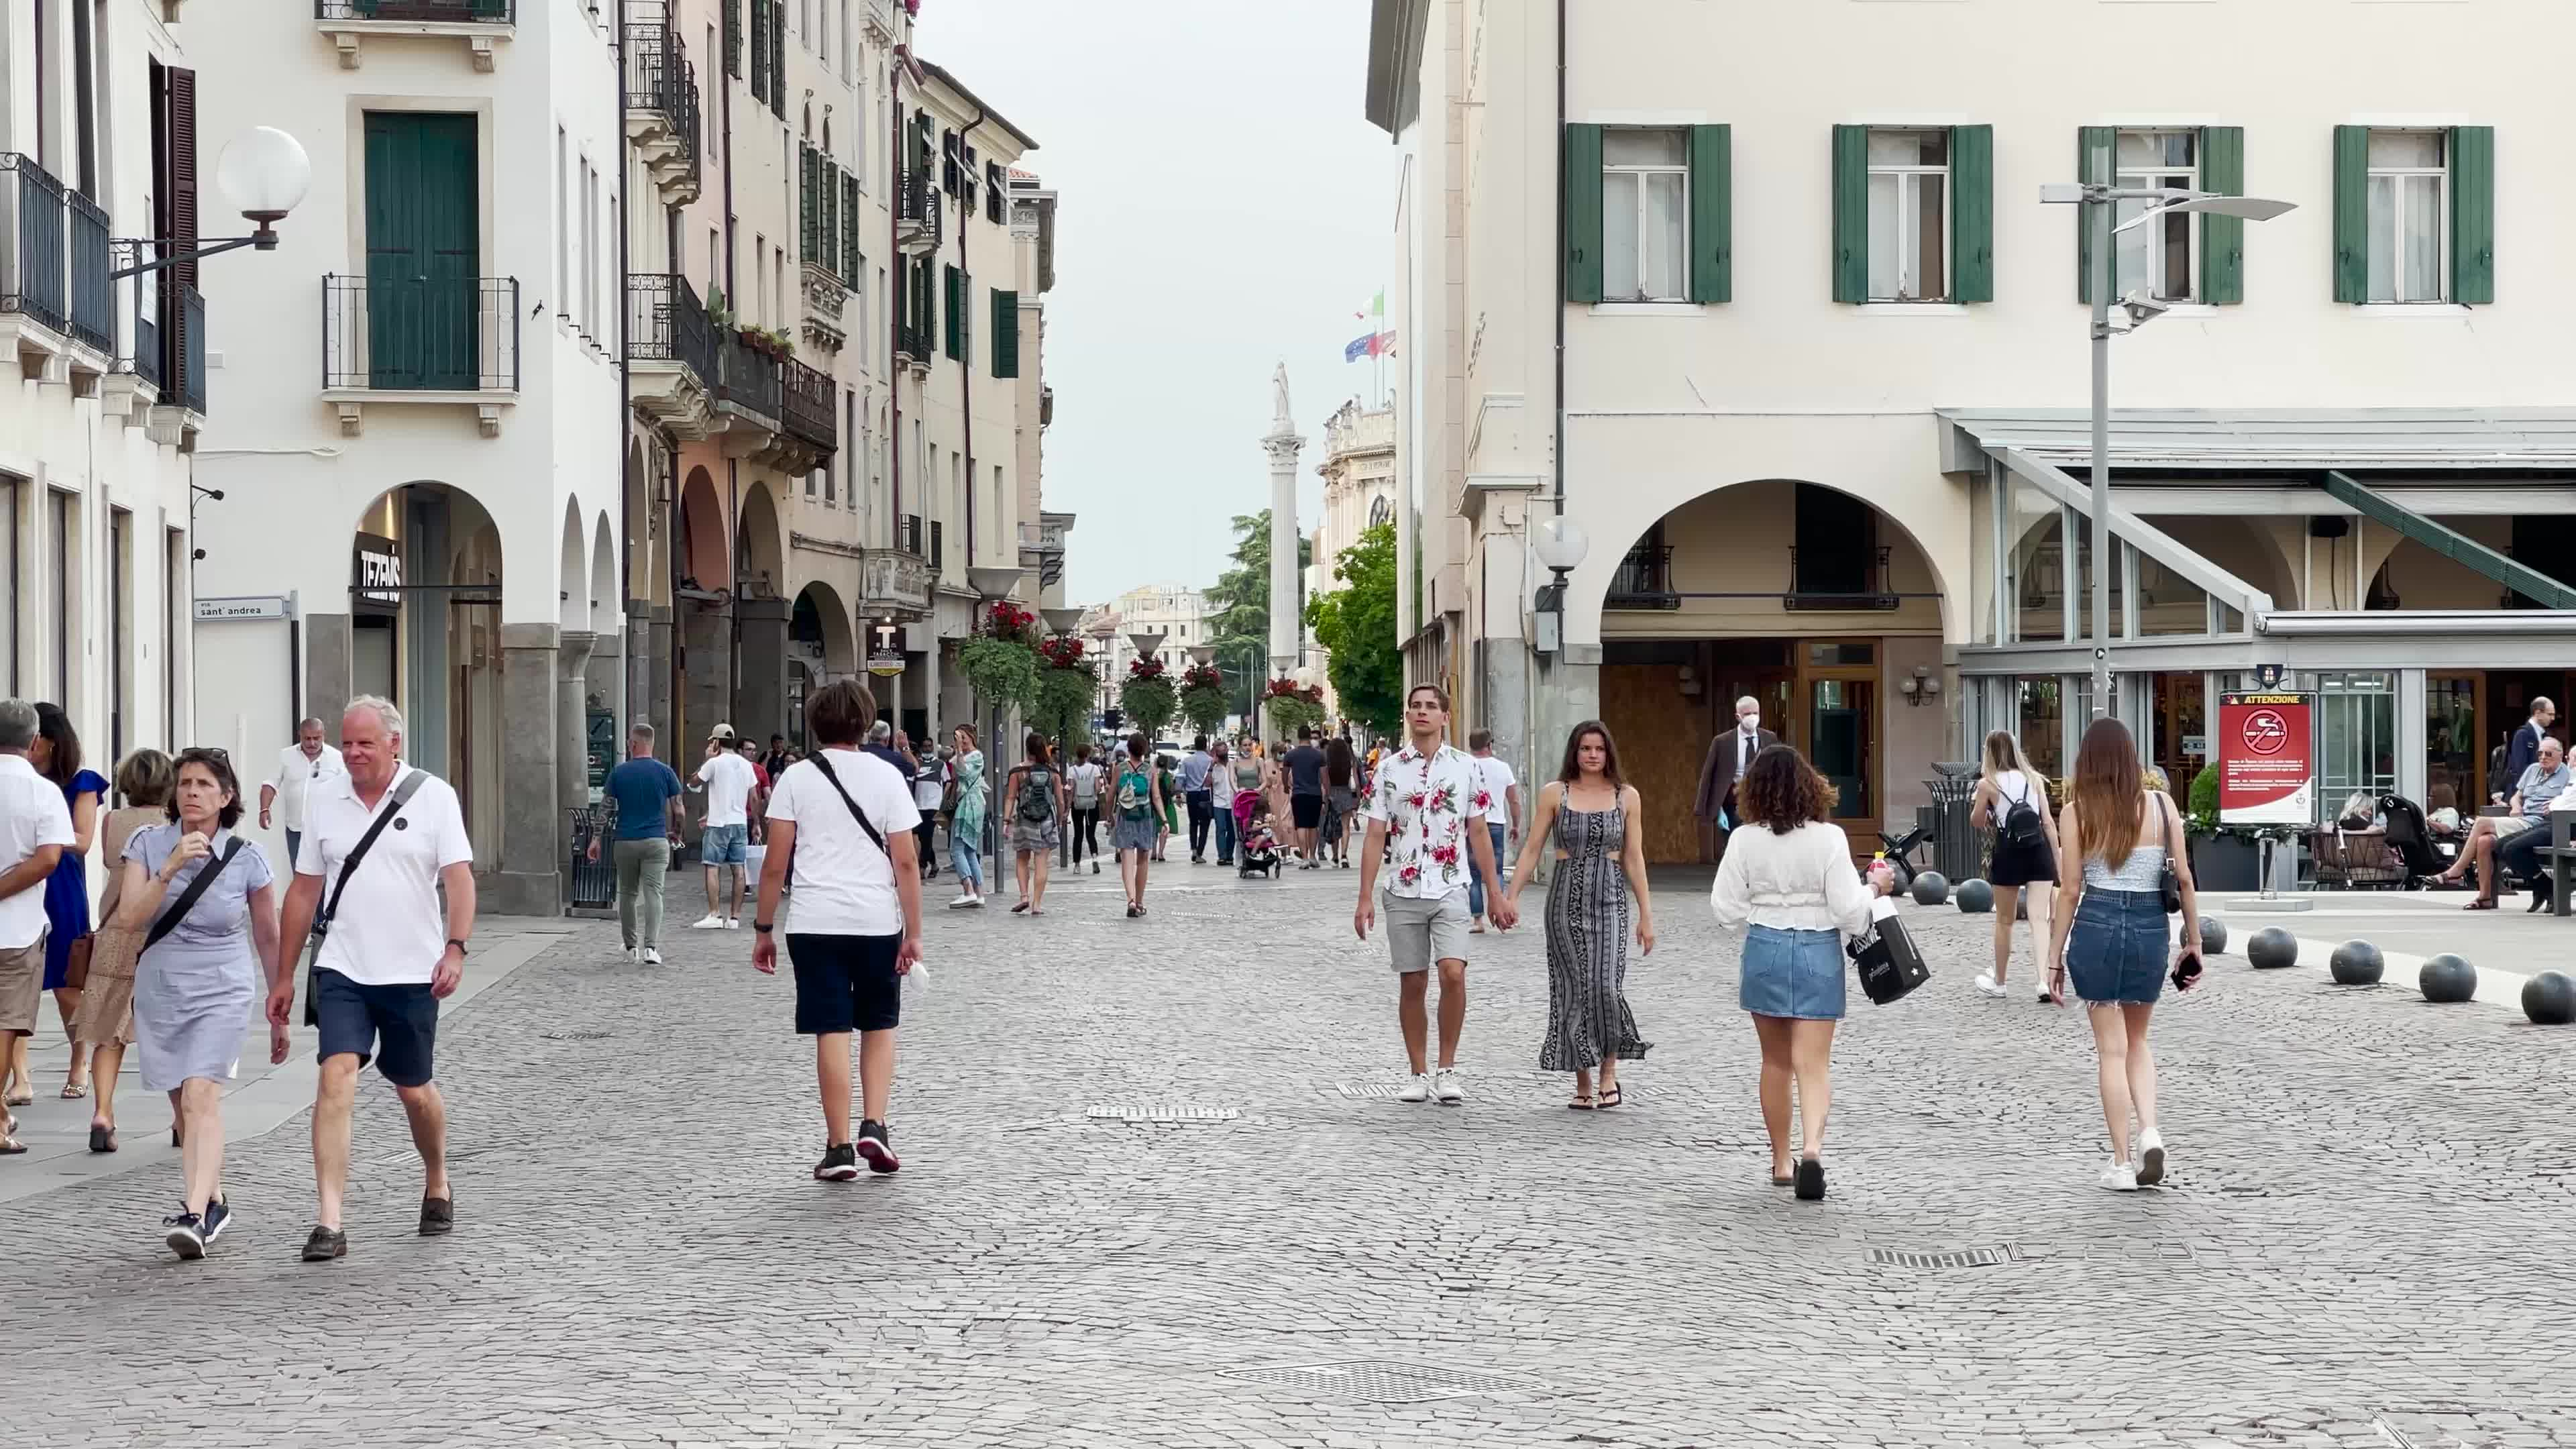 Daily Life In Padova, Italy amid the Covid-19 Pandemic